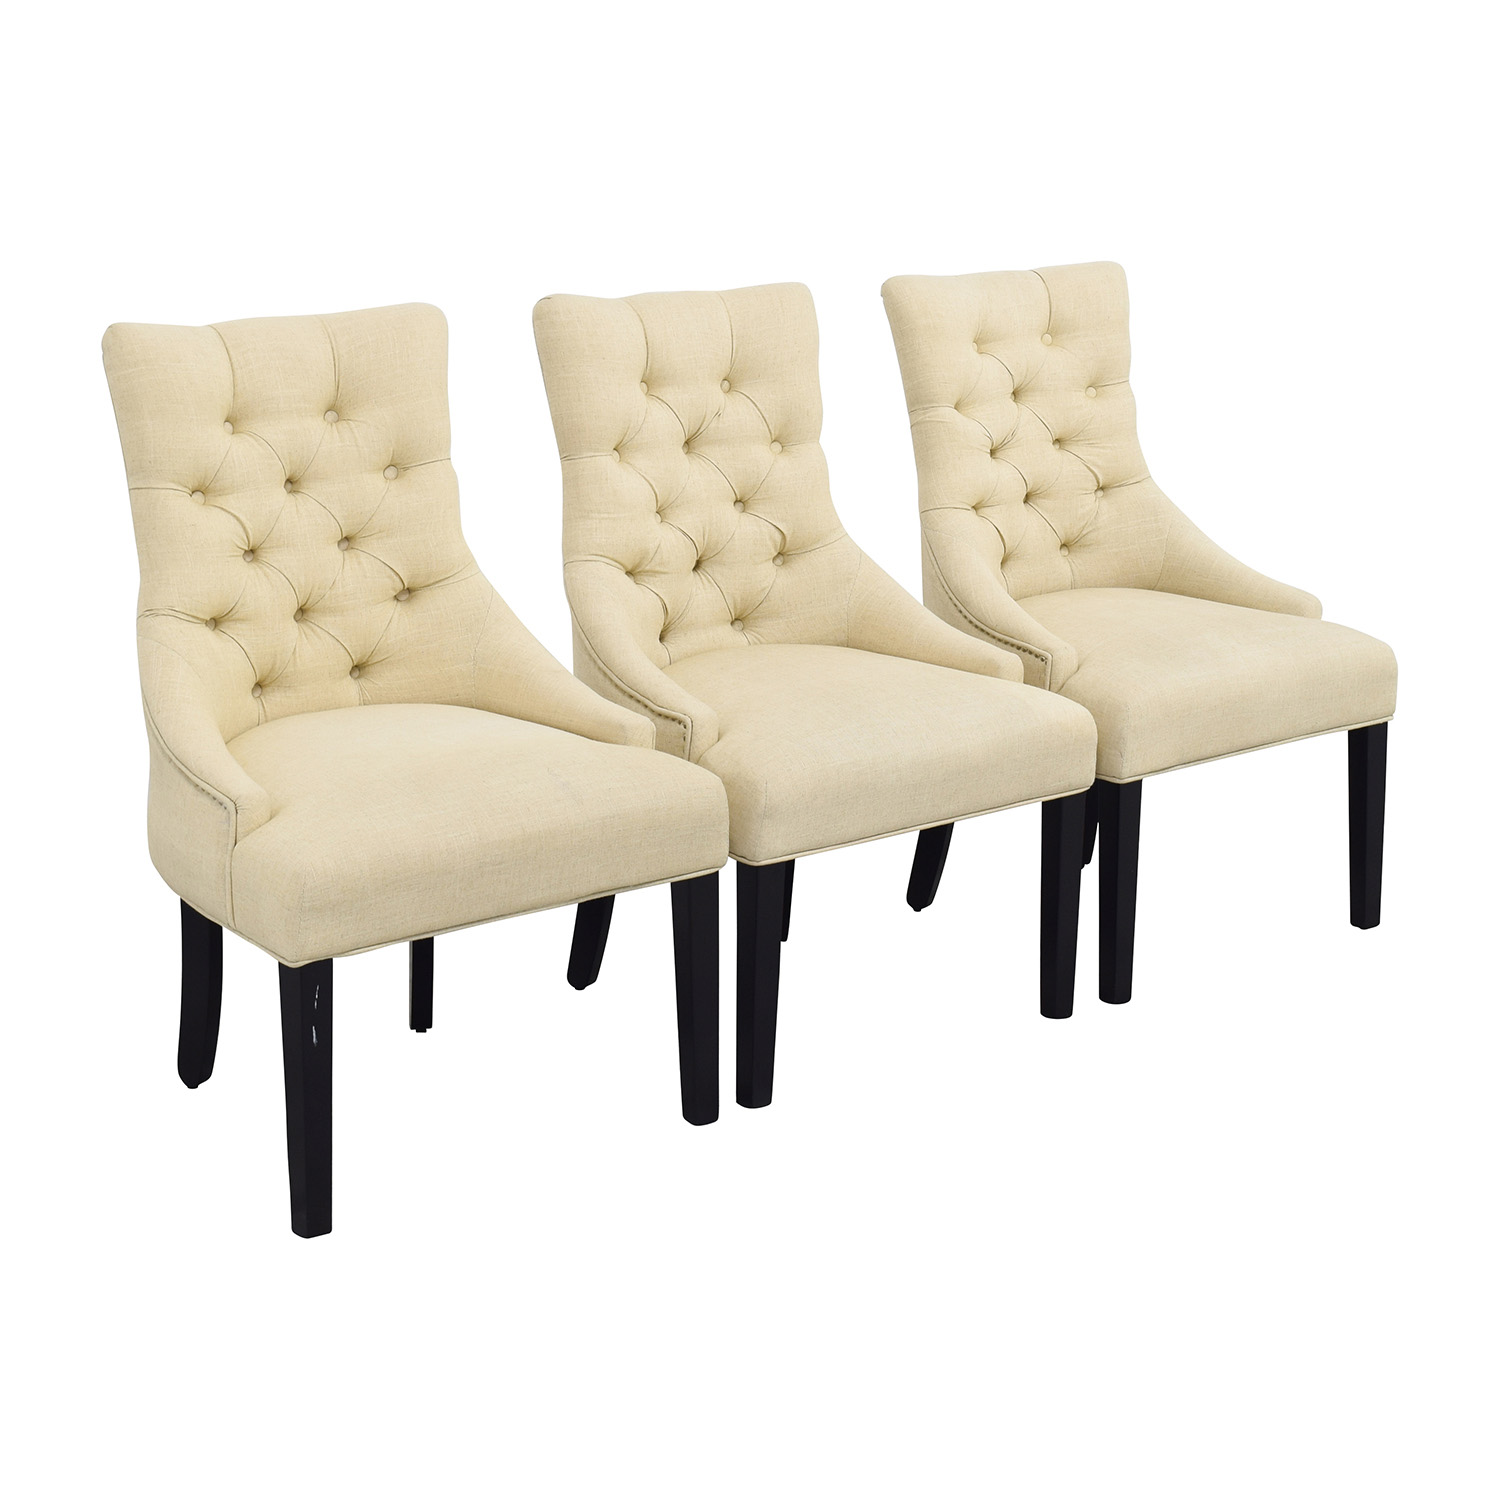 Used Wingback Chairs 87 Off West Elm West Elm Beige Tufted Wing Back Chairs